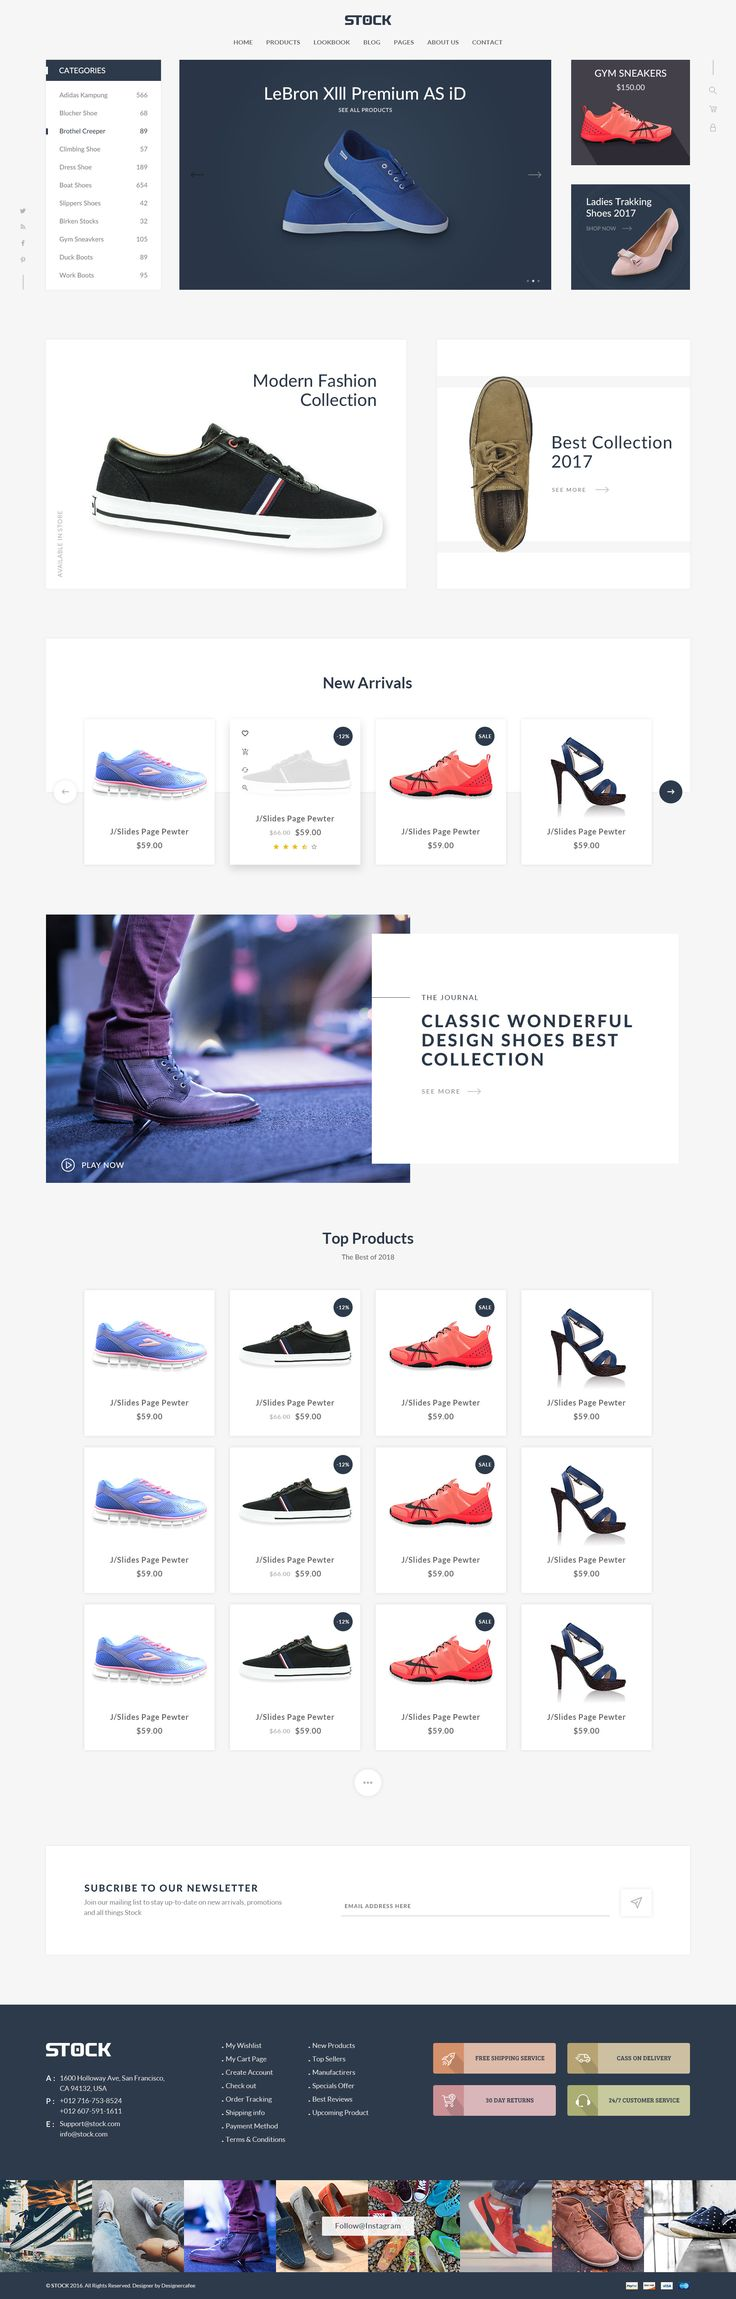 Stock eCommerce PSD Template 1731 best